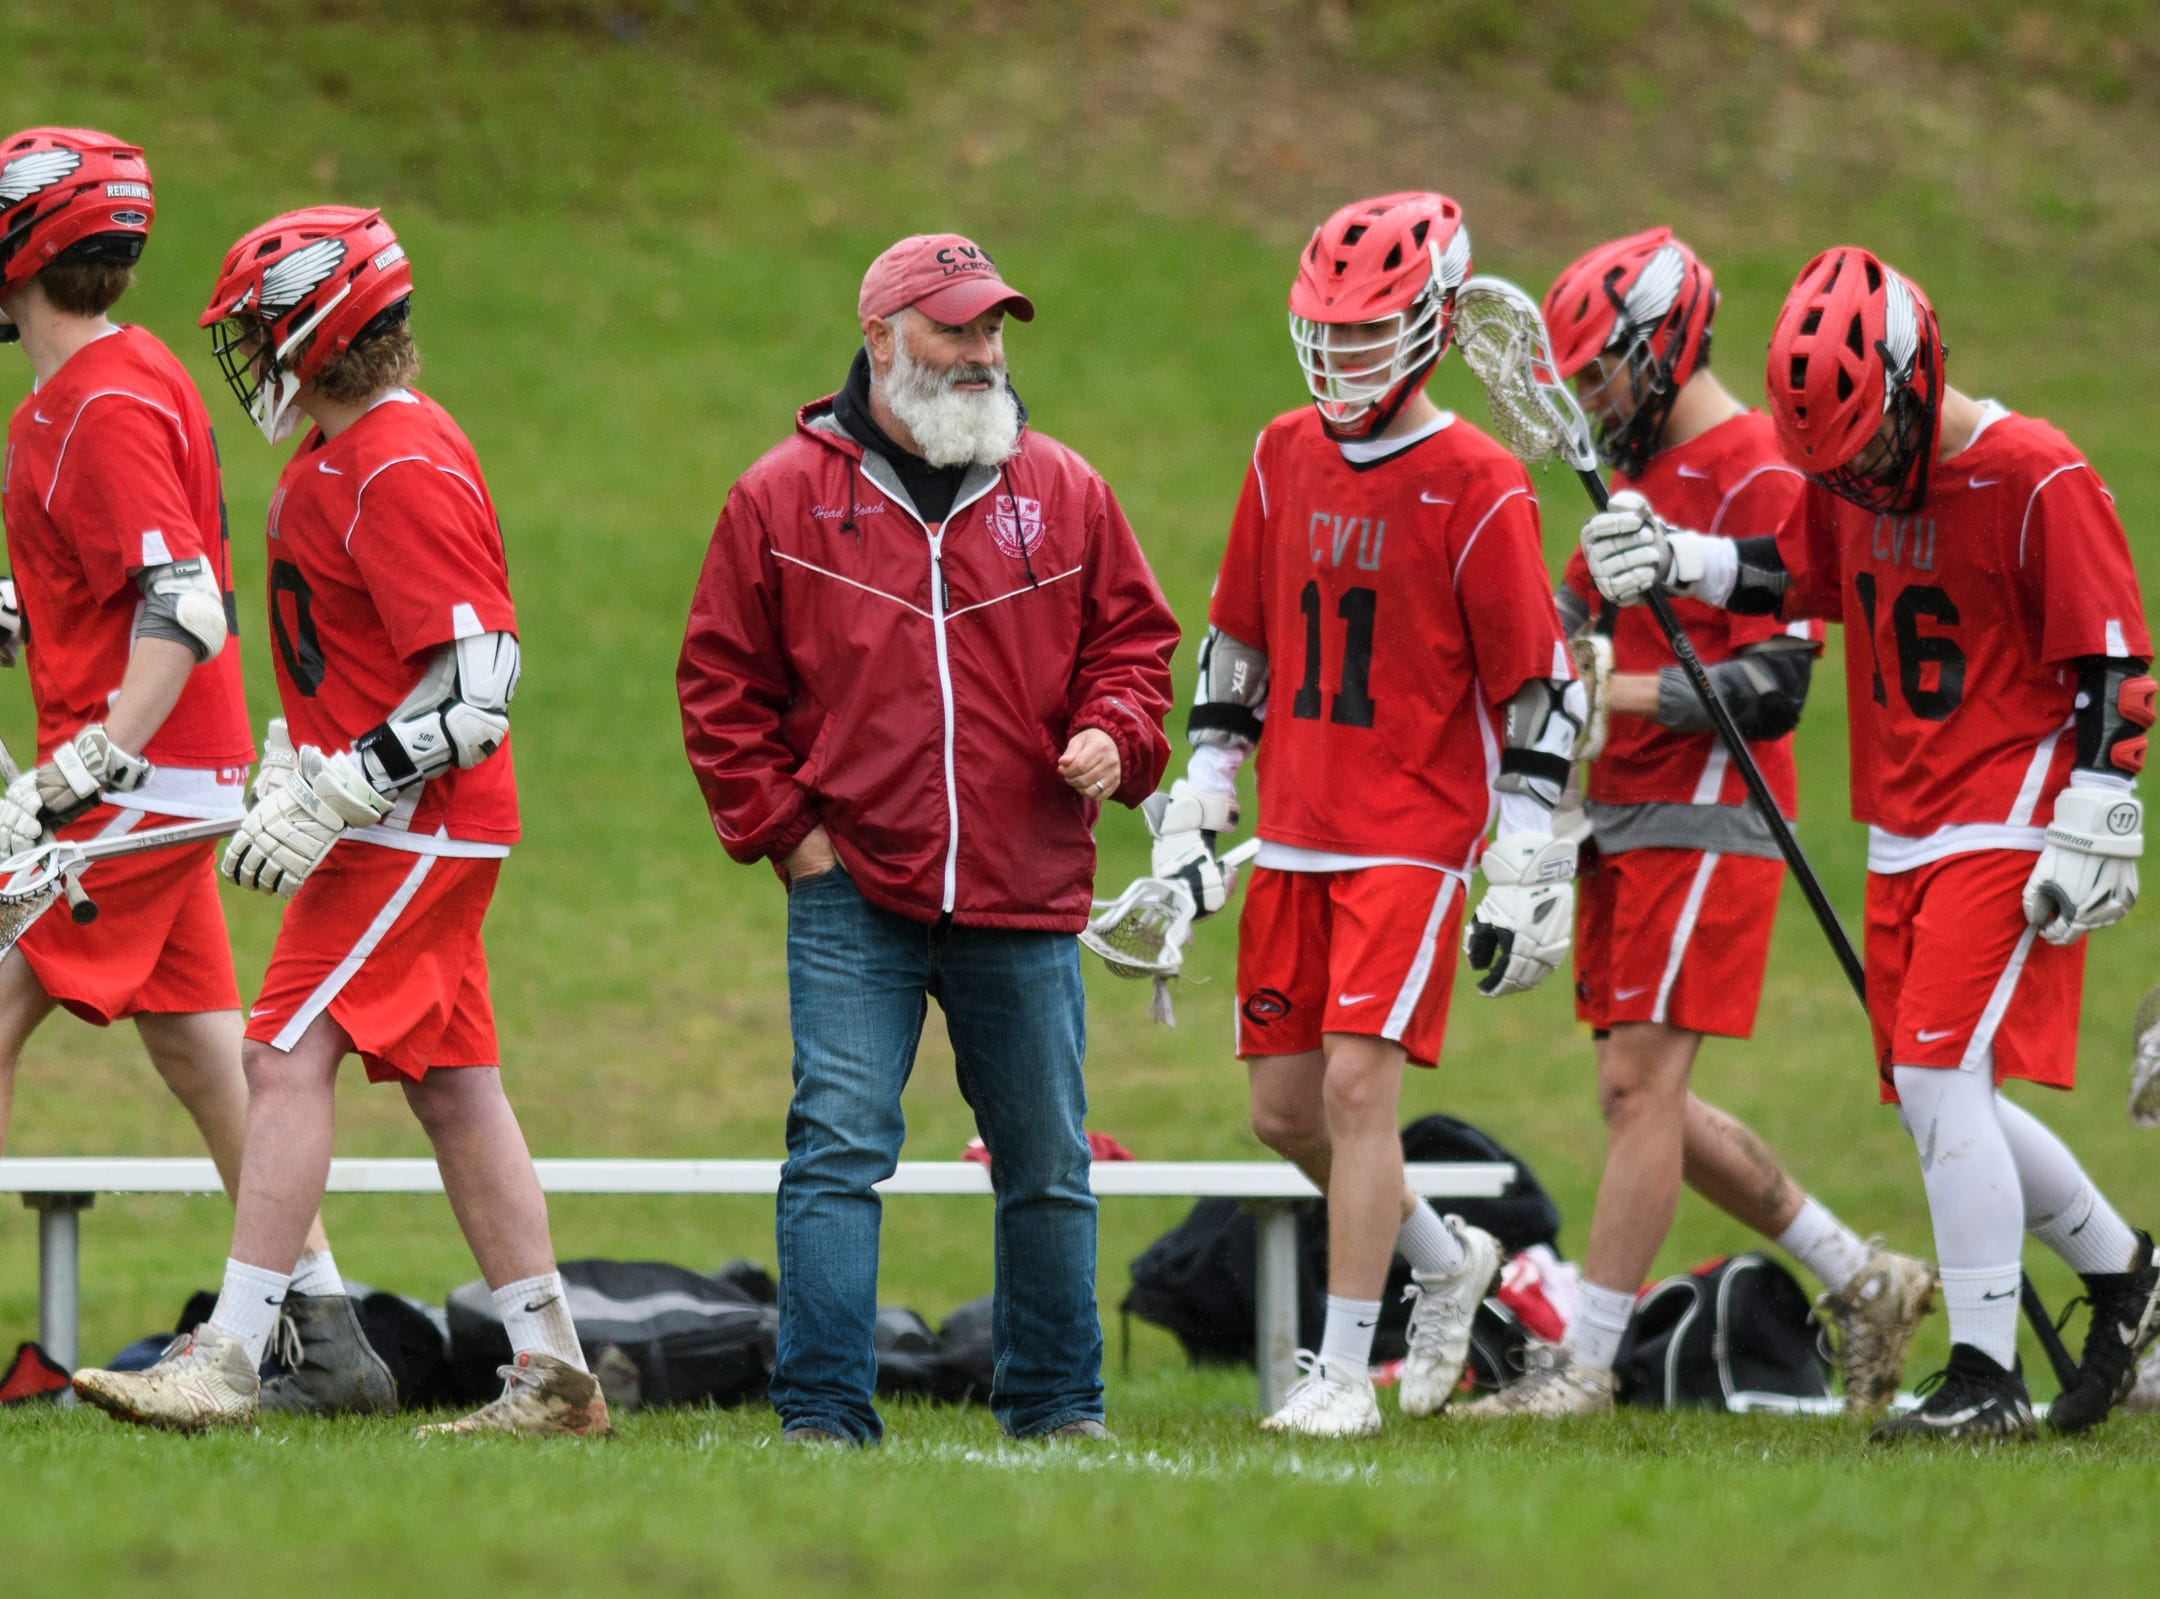 CVU head coach Dave Trevithick watches the action on the field during the boys lacrosse game between the Champlain Valley Union Redhawks and the Mount Mansfield Cougars at MMU High School on Tuesday afternoon May 14, 2019 in Jericho, Vermont.